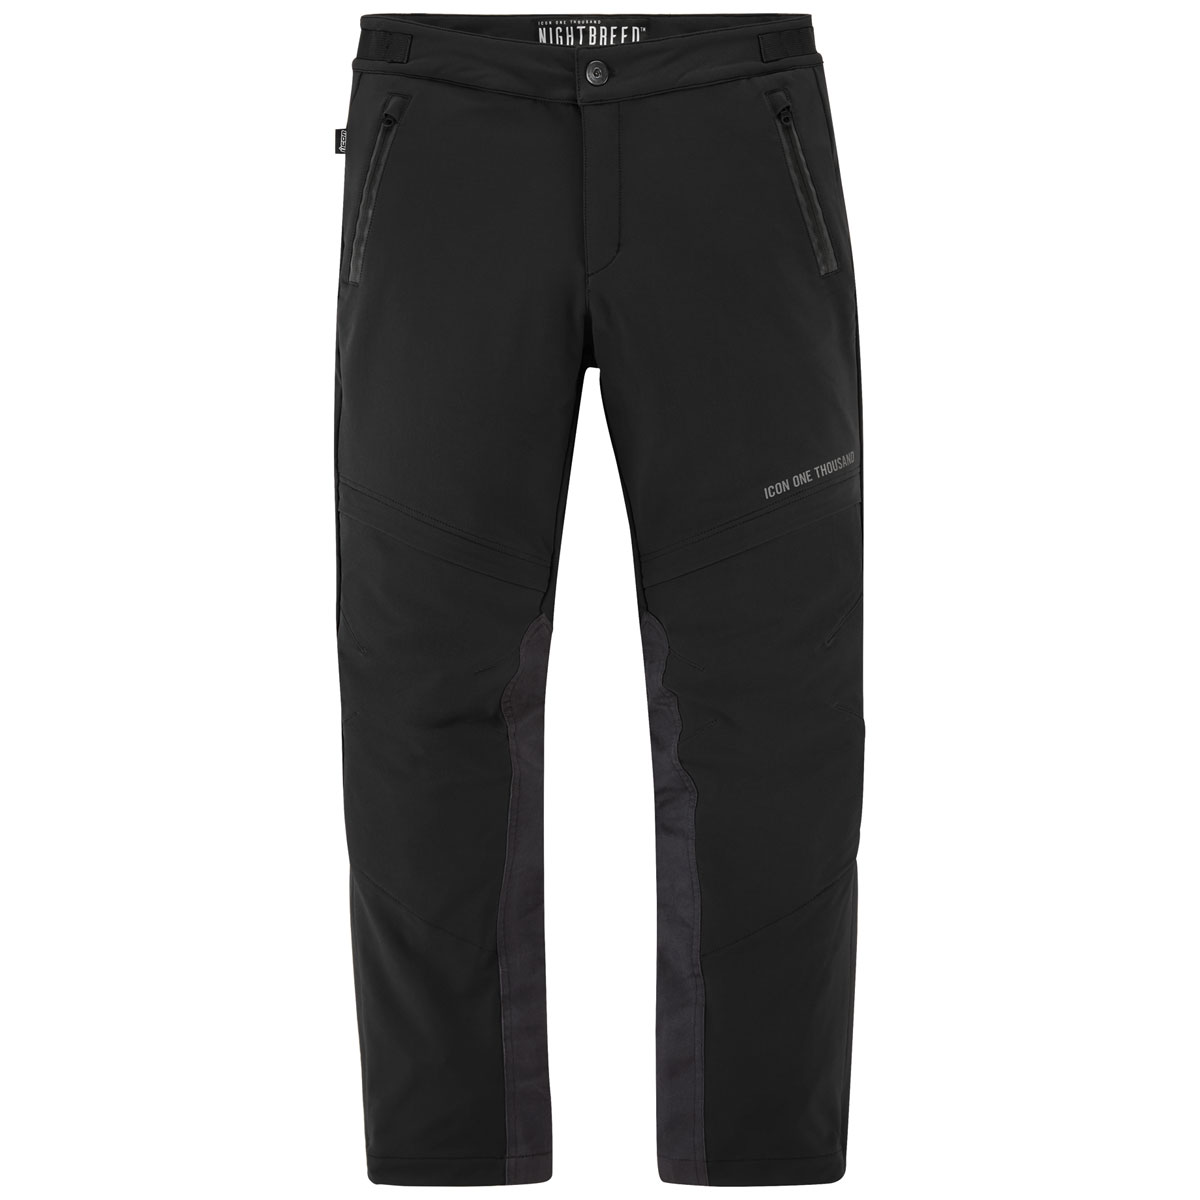 ICON One Thousand Men's Nightbreed Black Pants